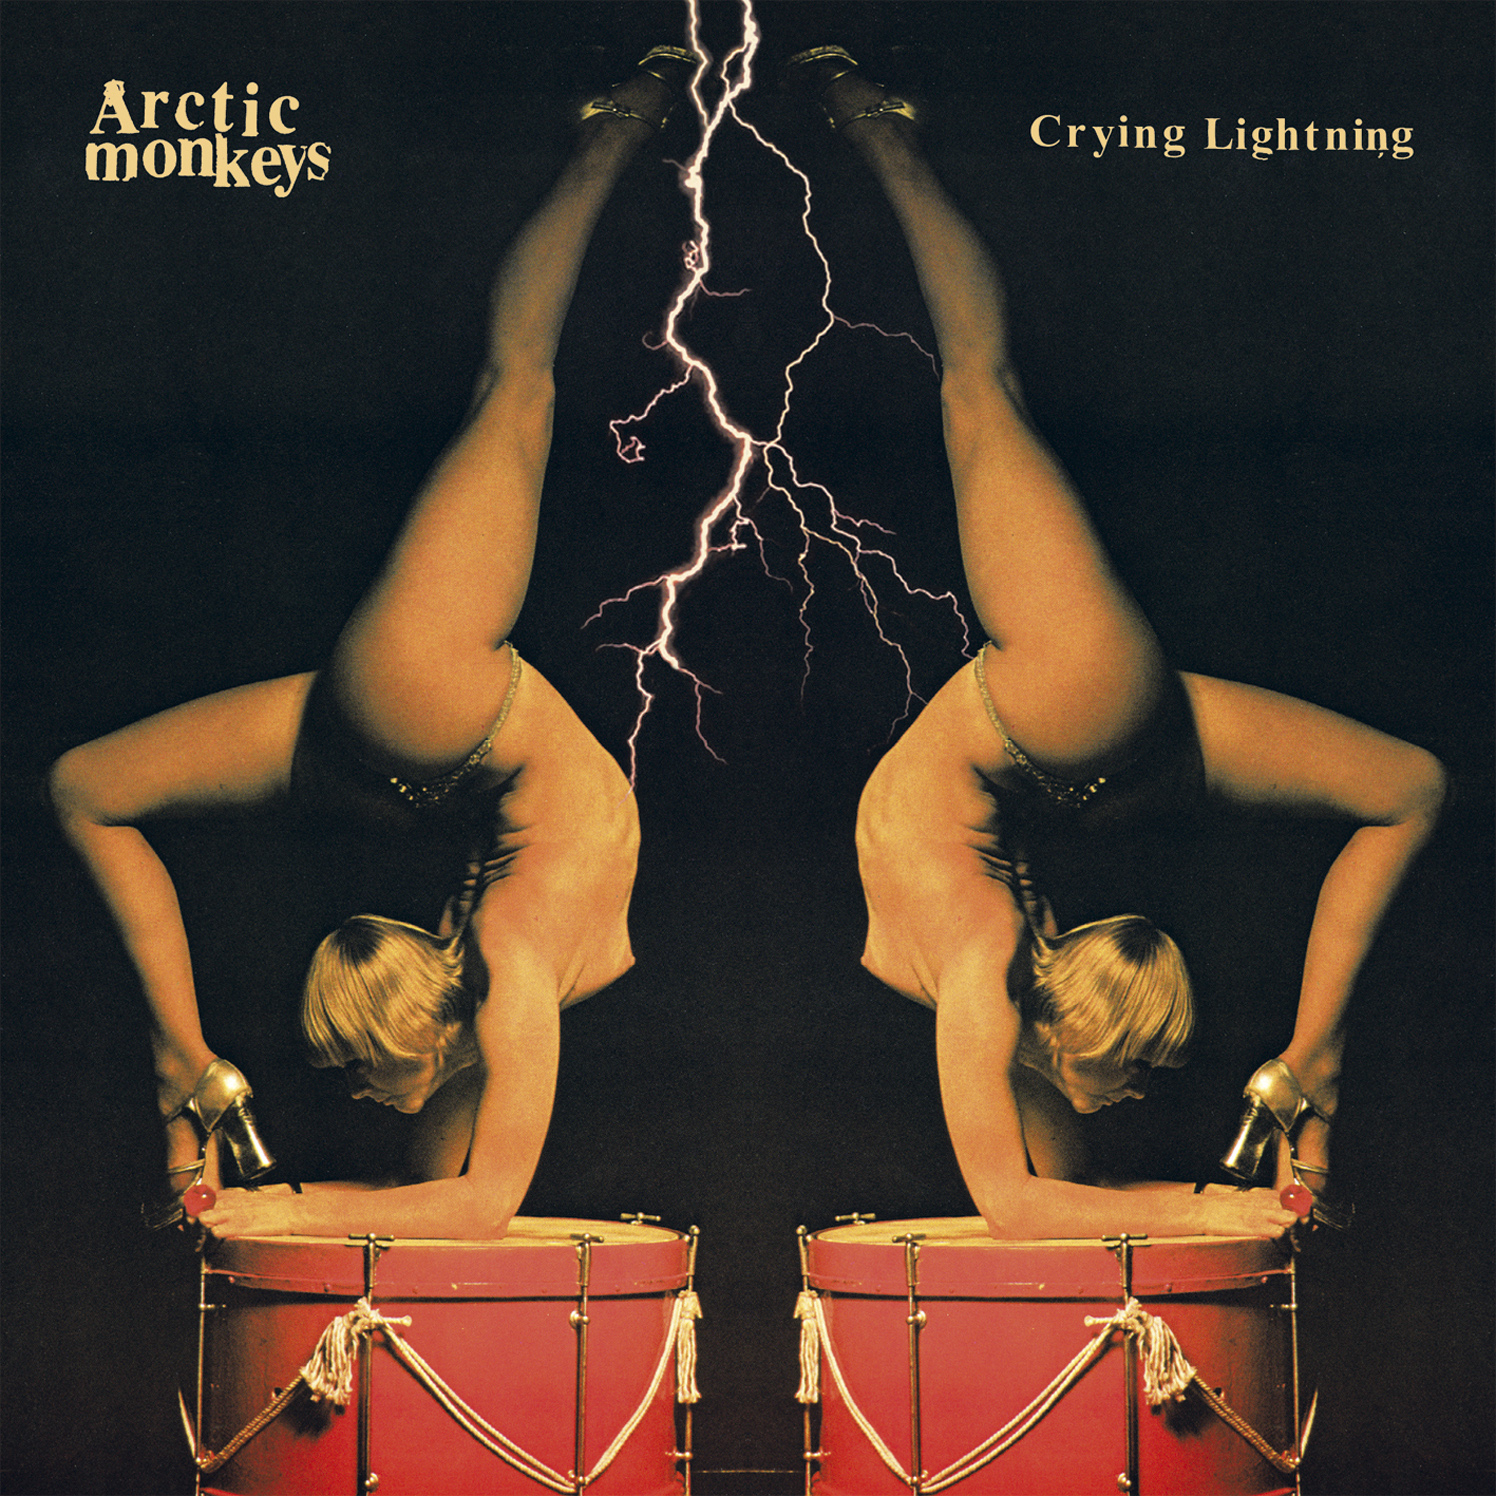 Arctic Monkeys / Crying Lightning